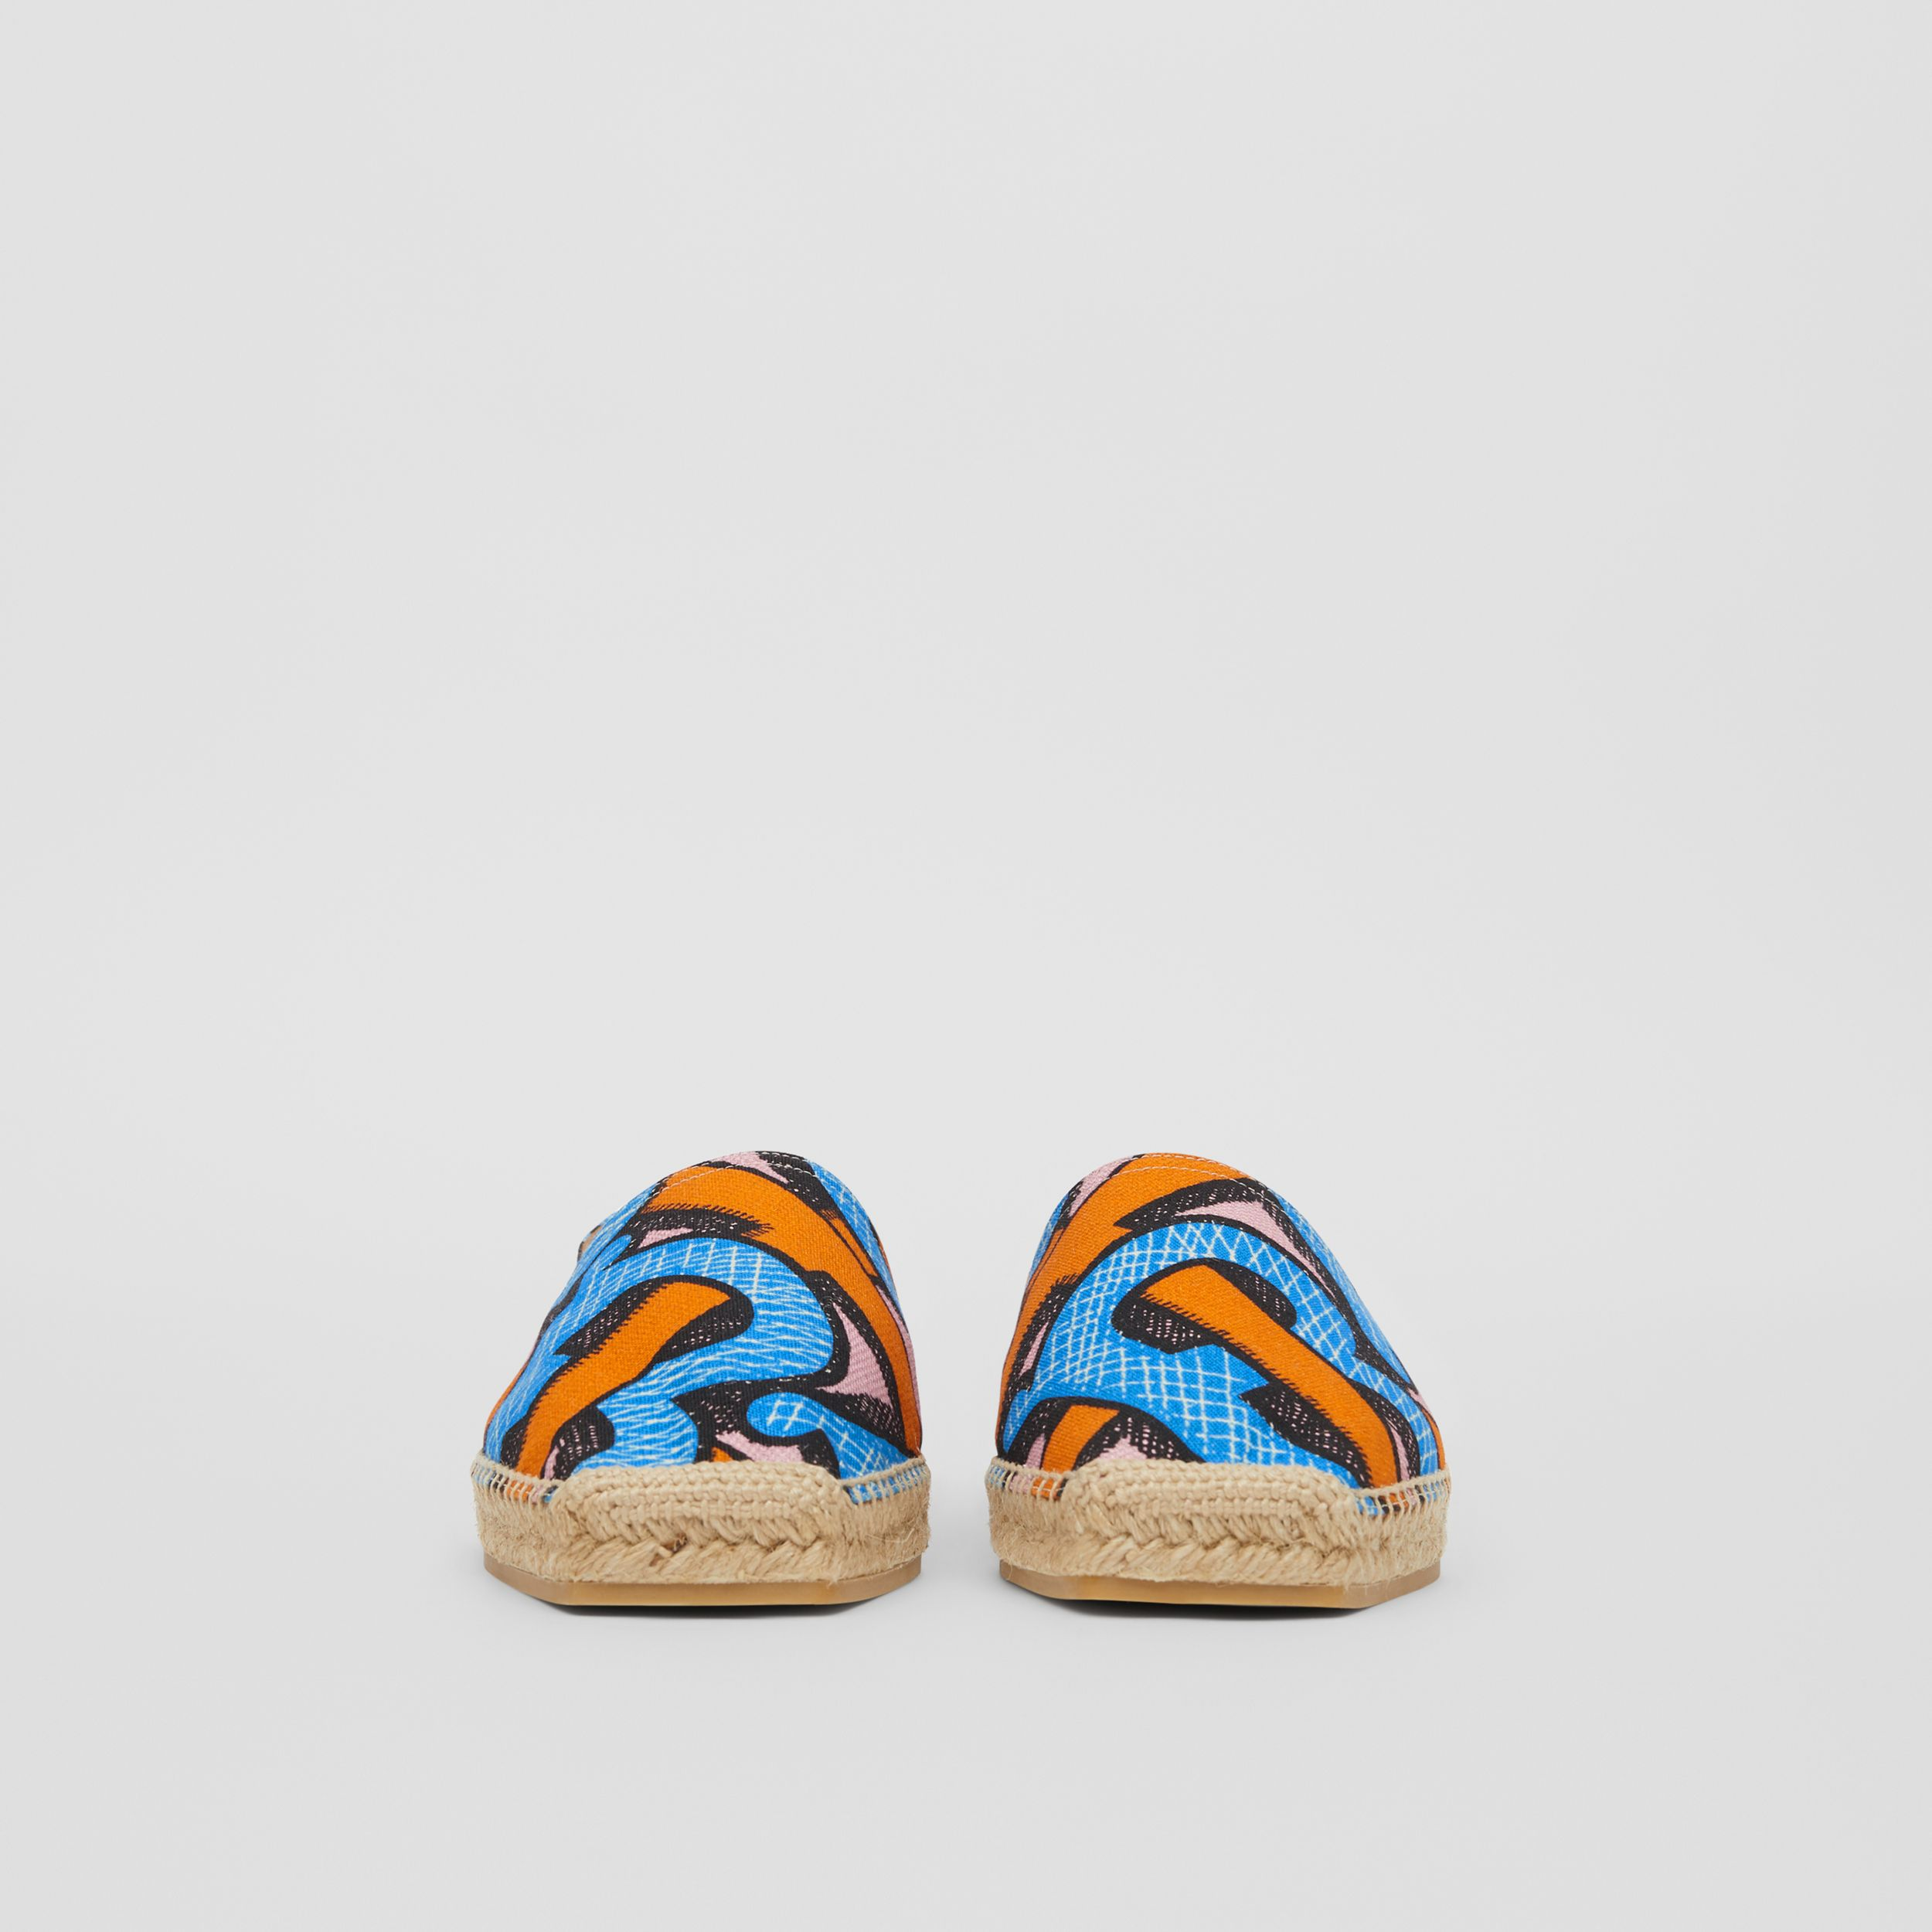 Monogram Print Cotton Canvas Espadrilles in Bright Cobalt - Women | Burberry - 4